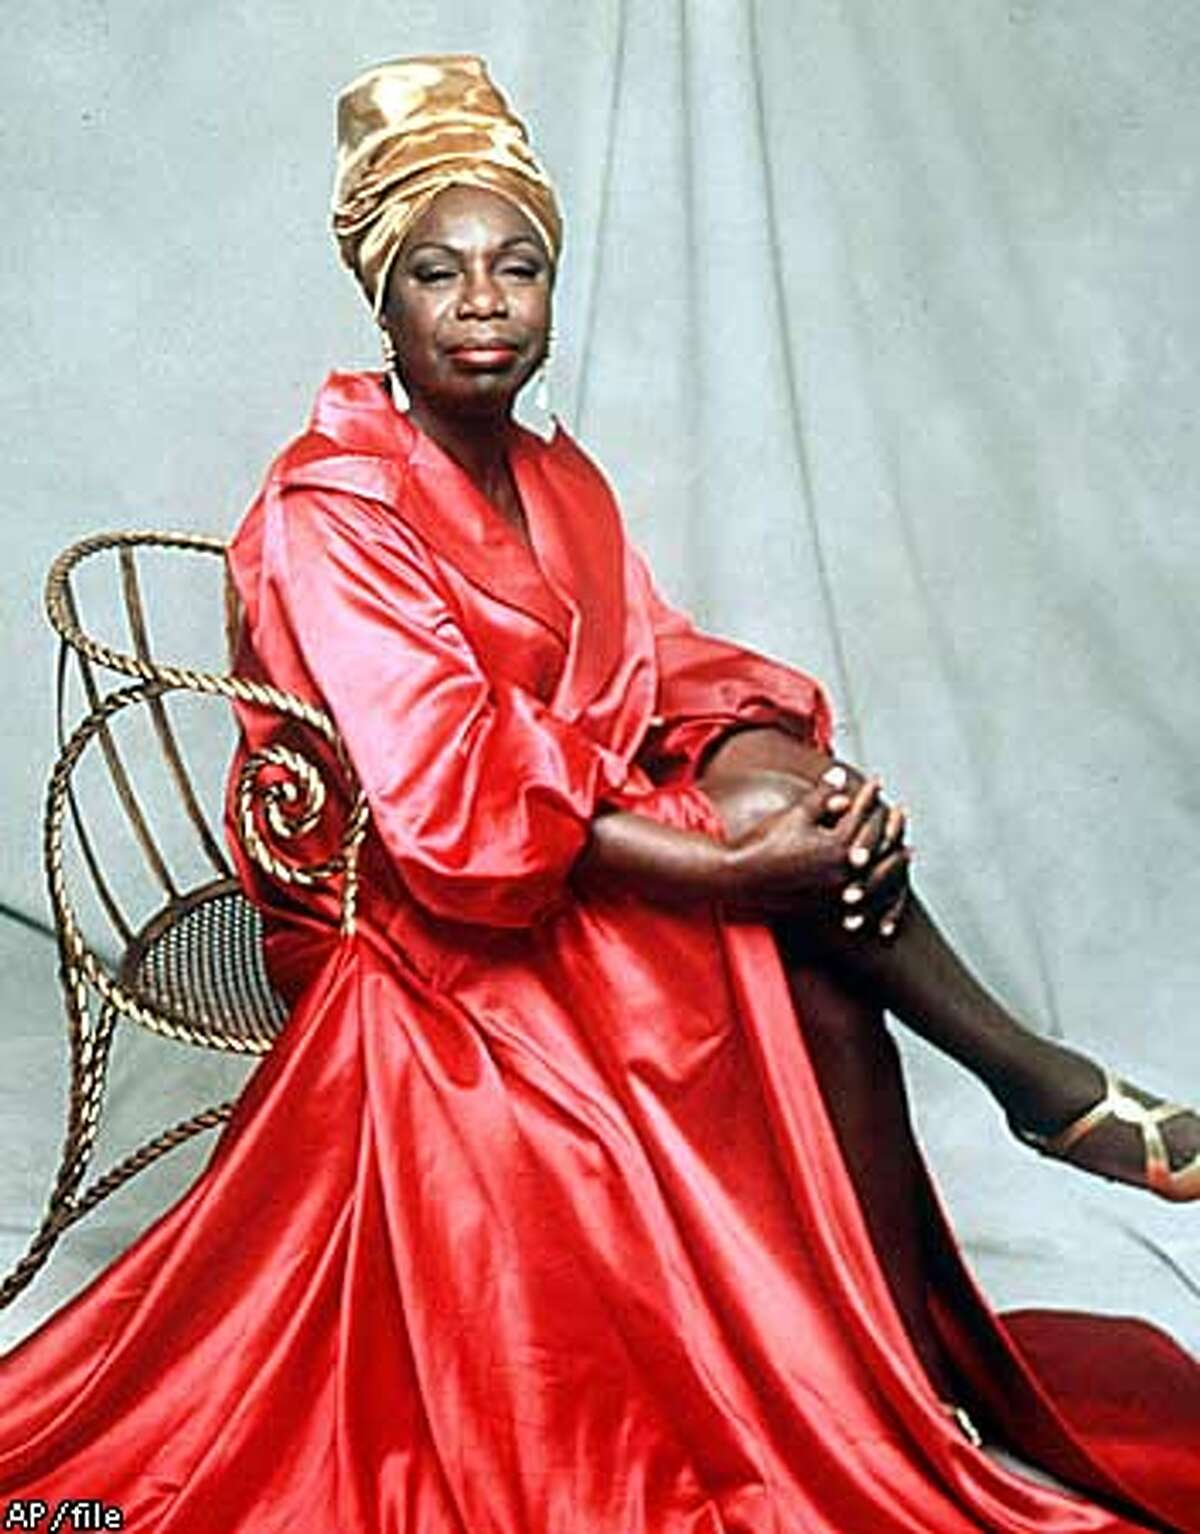 ** FILE ** Nina Simone is shown in this 1993 handout file photo. Simone, the jazz great whose rapsy, forceful voice helped define the civil rights movement, died Monday, April 21, 2003, at her home in France, according to her U.S. booking agent. She was 70. (AP Photo/File)